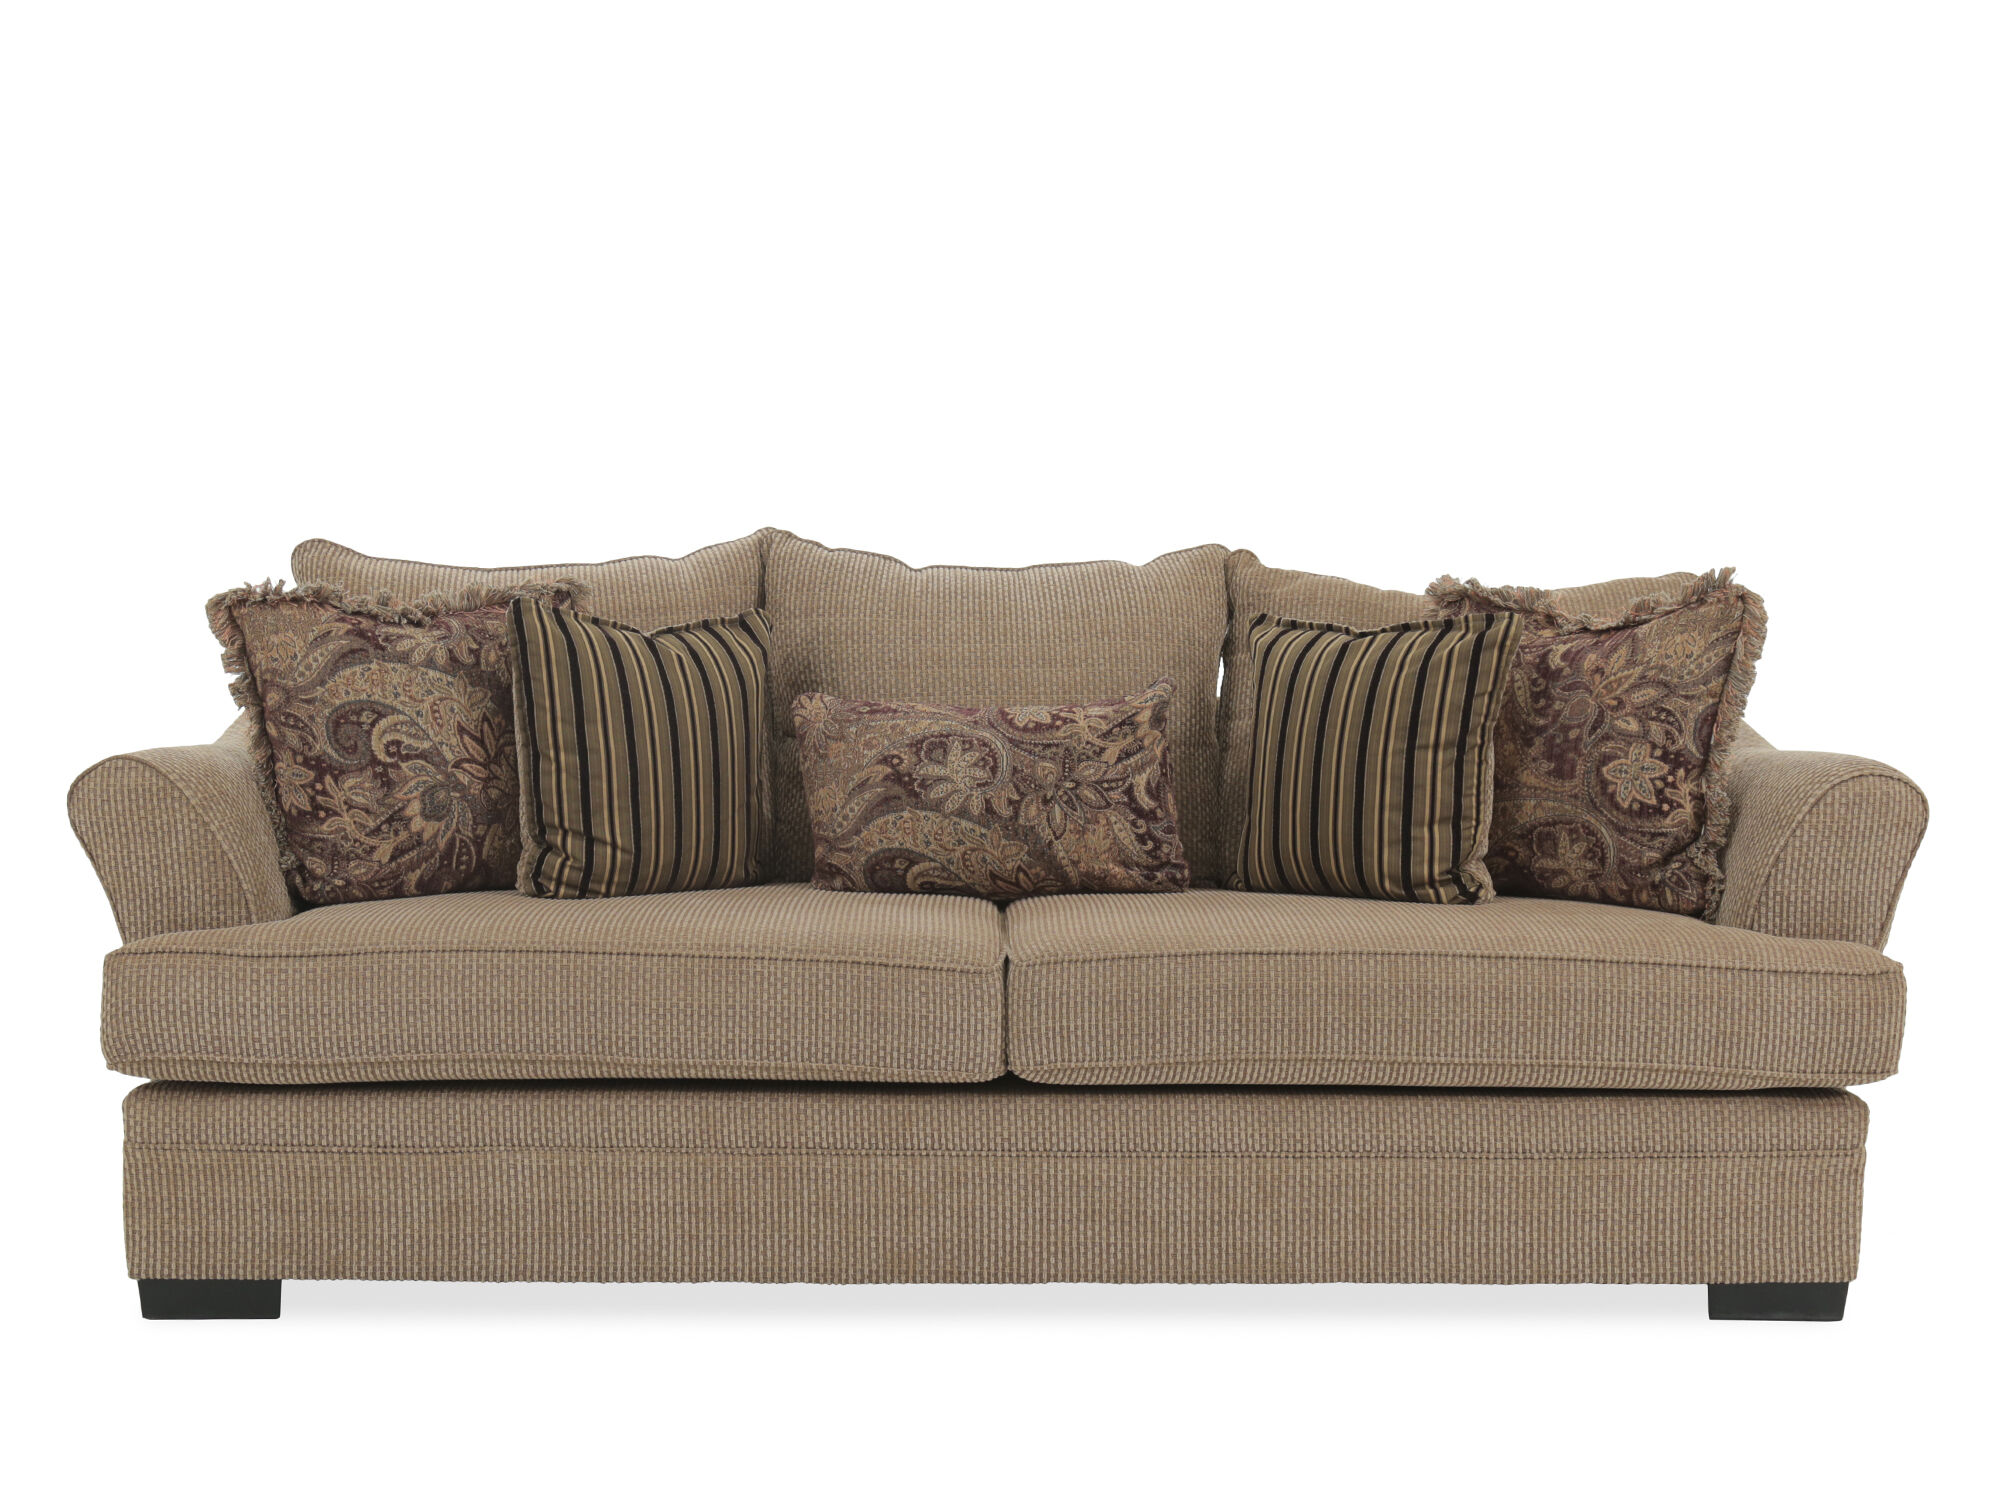 michael nicholas aspen sofa storage box 2 seat bed traditional 101 quot in nutmeg brown mathis brothers